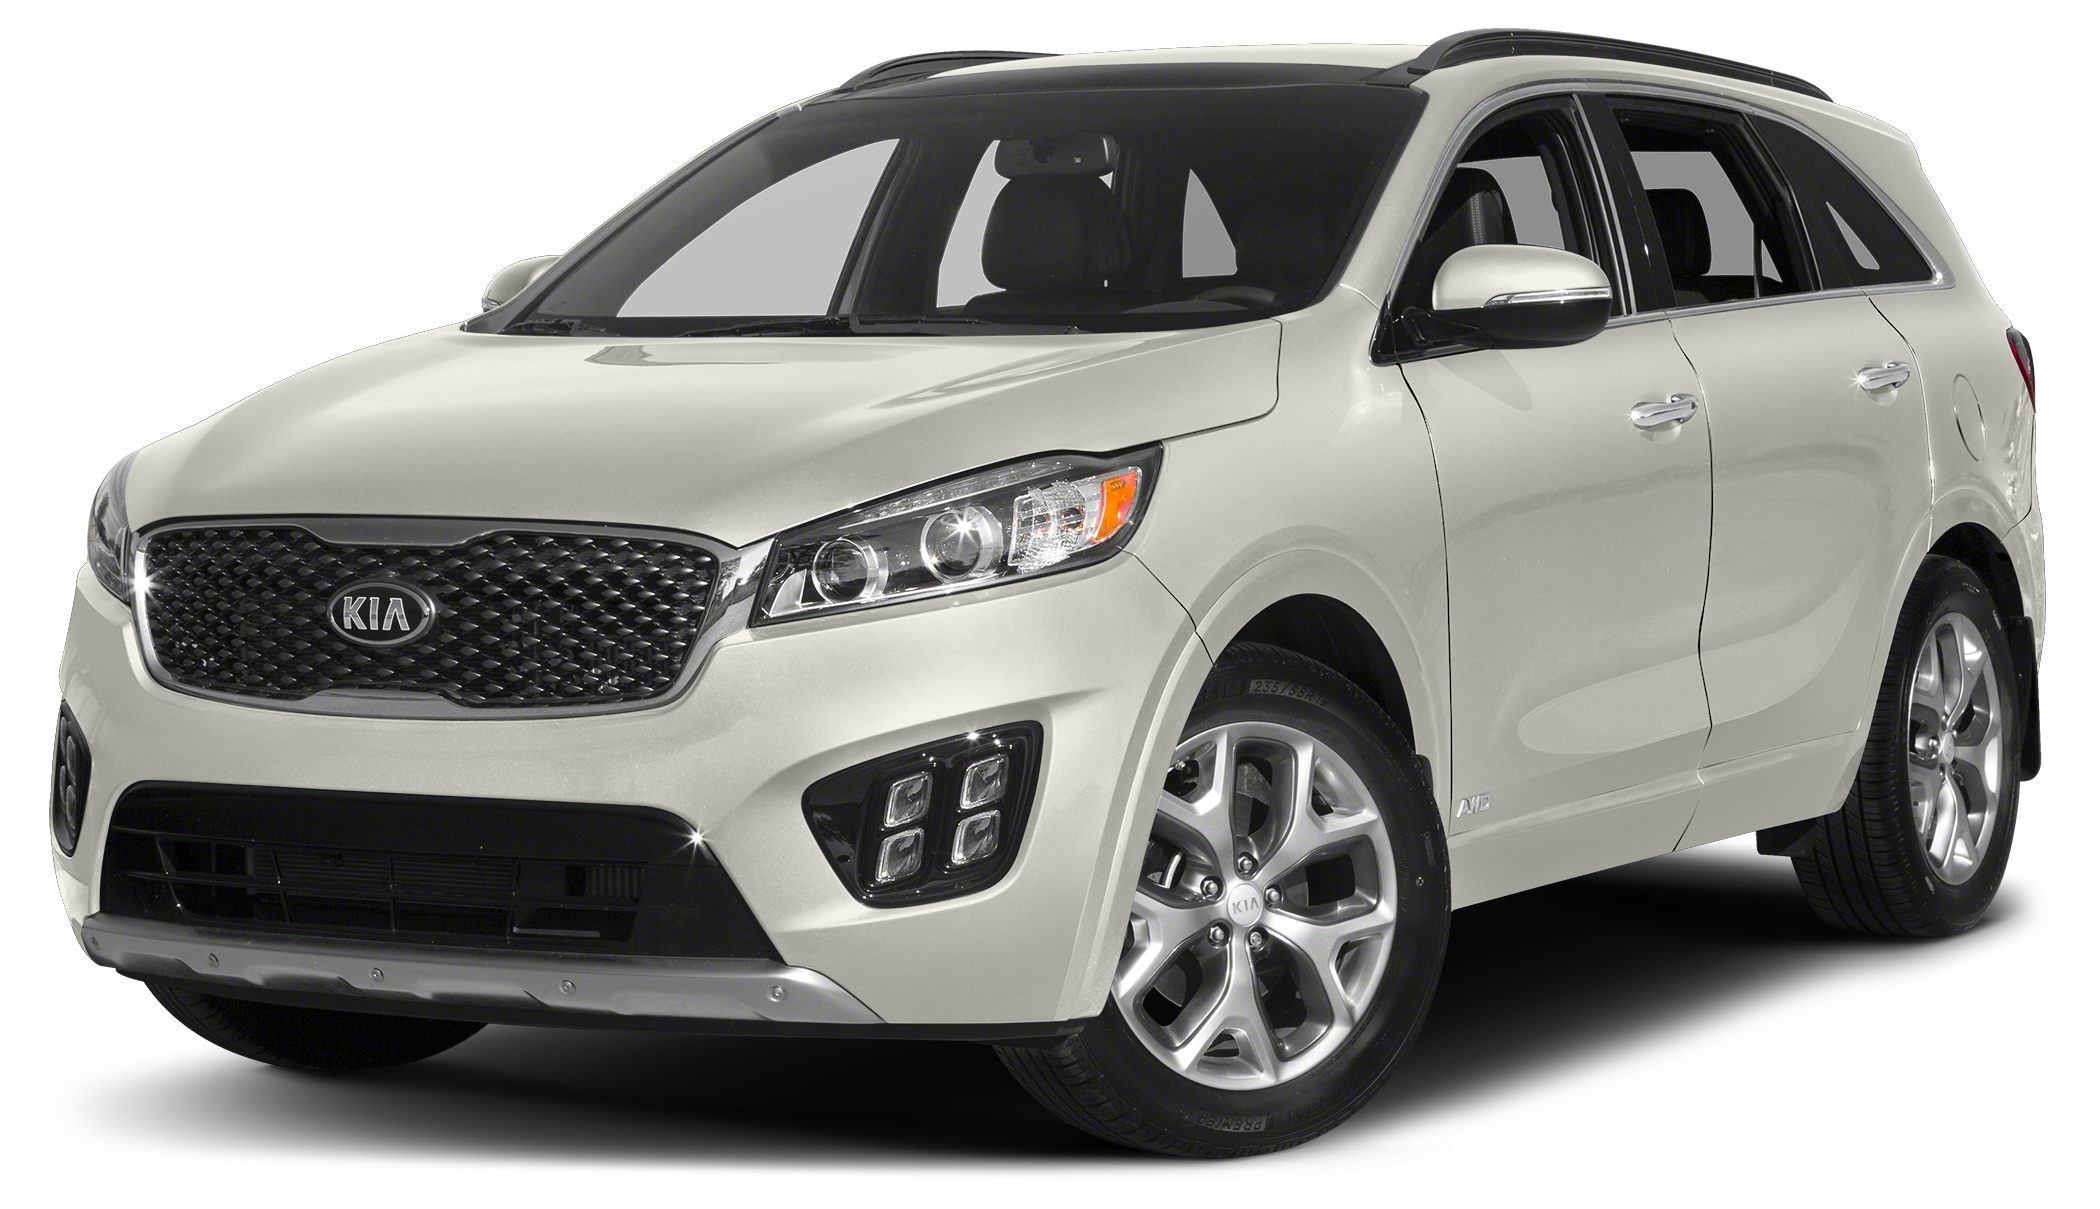 2017 Kia Sorento 33 SXL At Sunset Kia of Sarasota we pride ourselves on exceptional customer serv